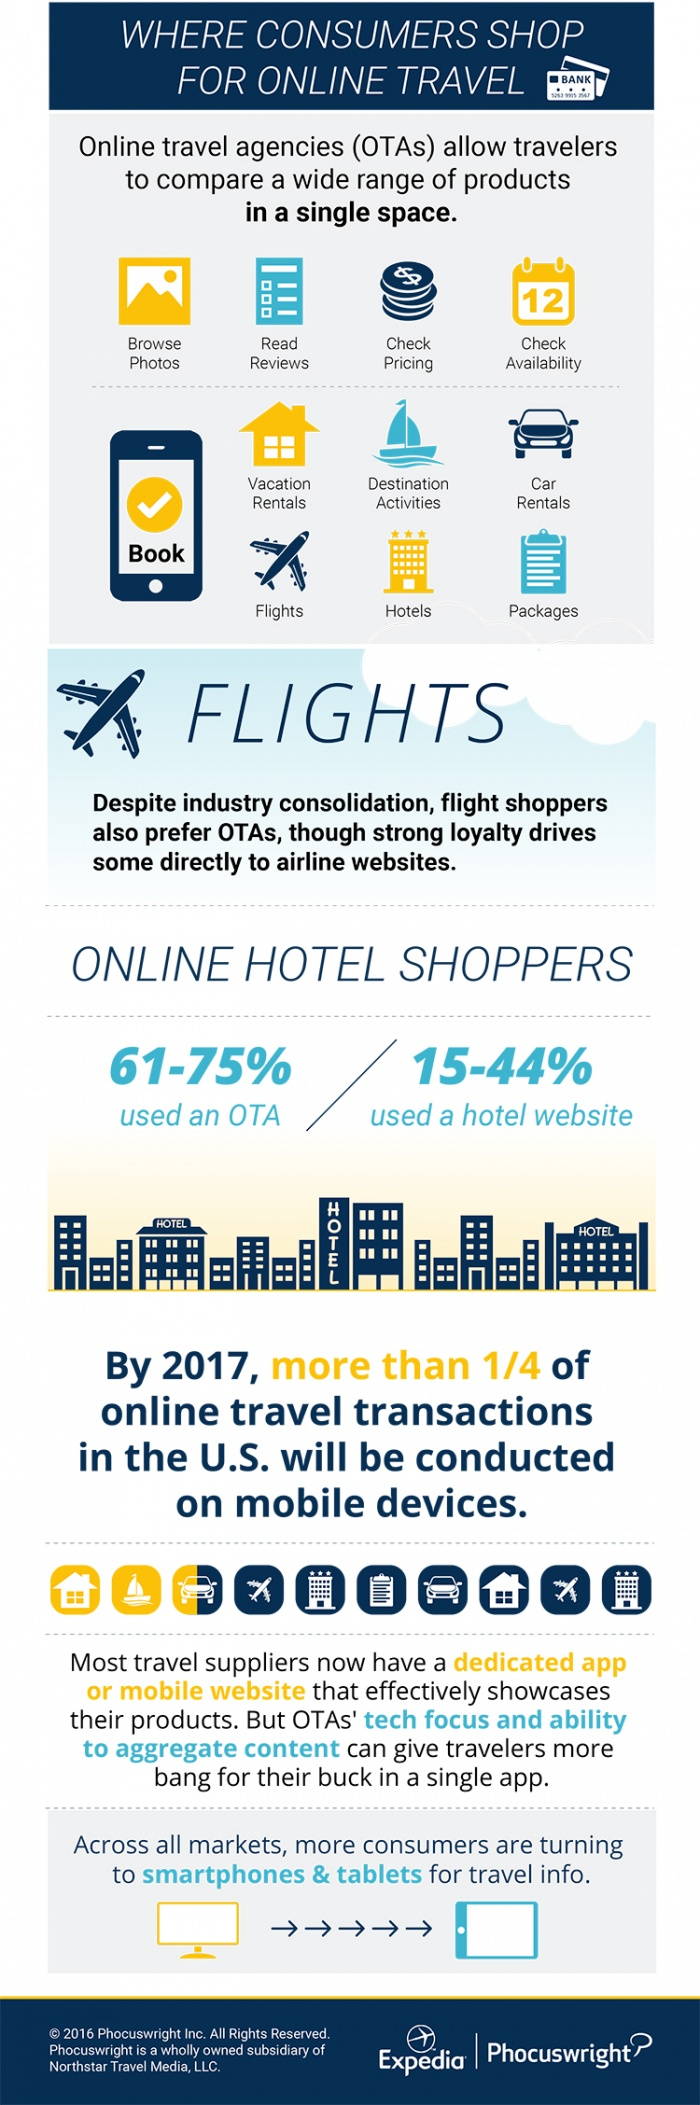 Where Consumers Shop For Online Travel